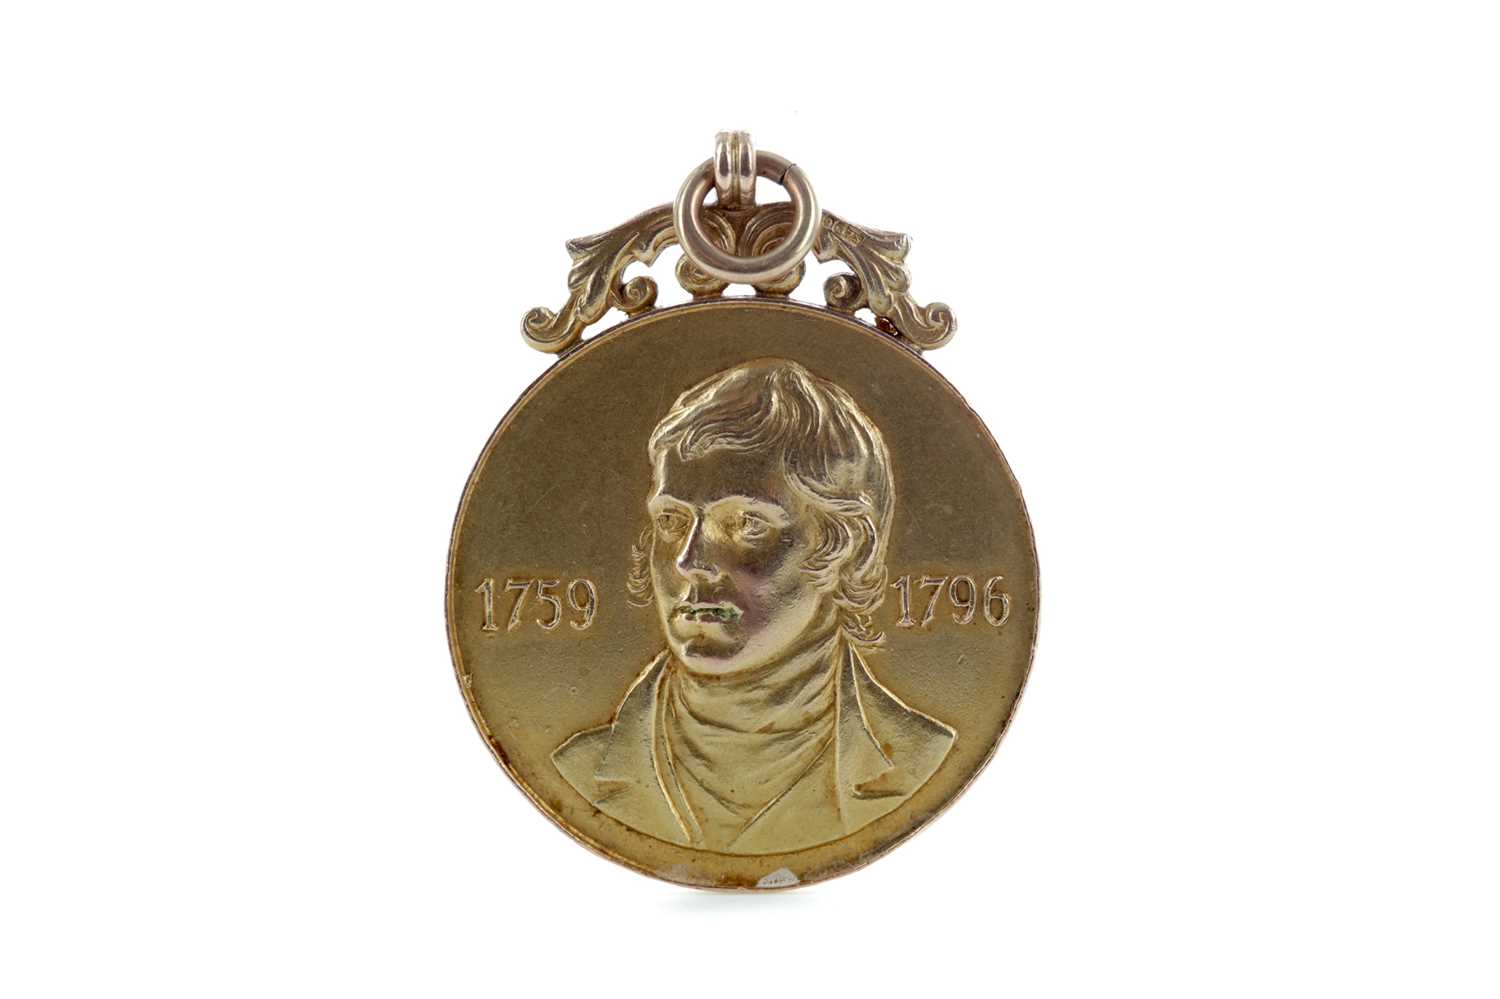 Lot 1751 - A ROBERT BURNS GOLD MEDAL, AWARDED TO DOUGIE GRAY IN 1928